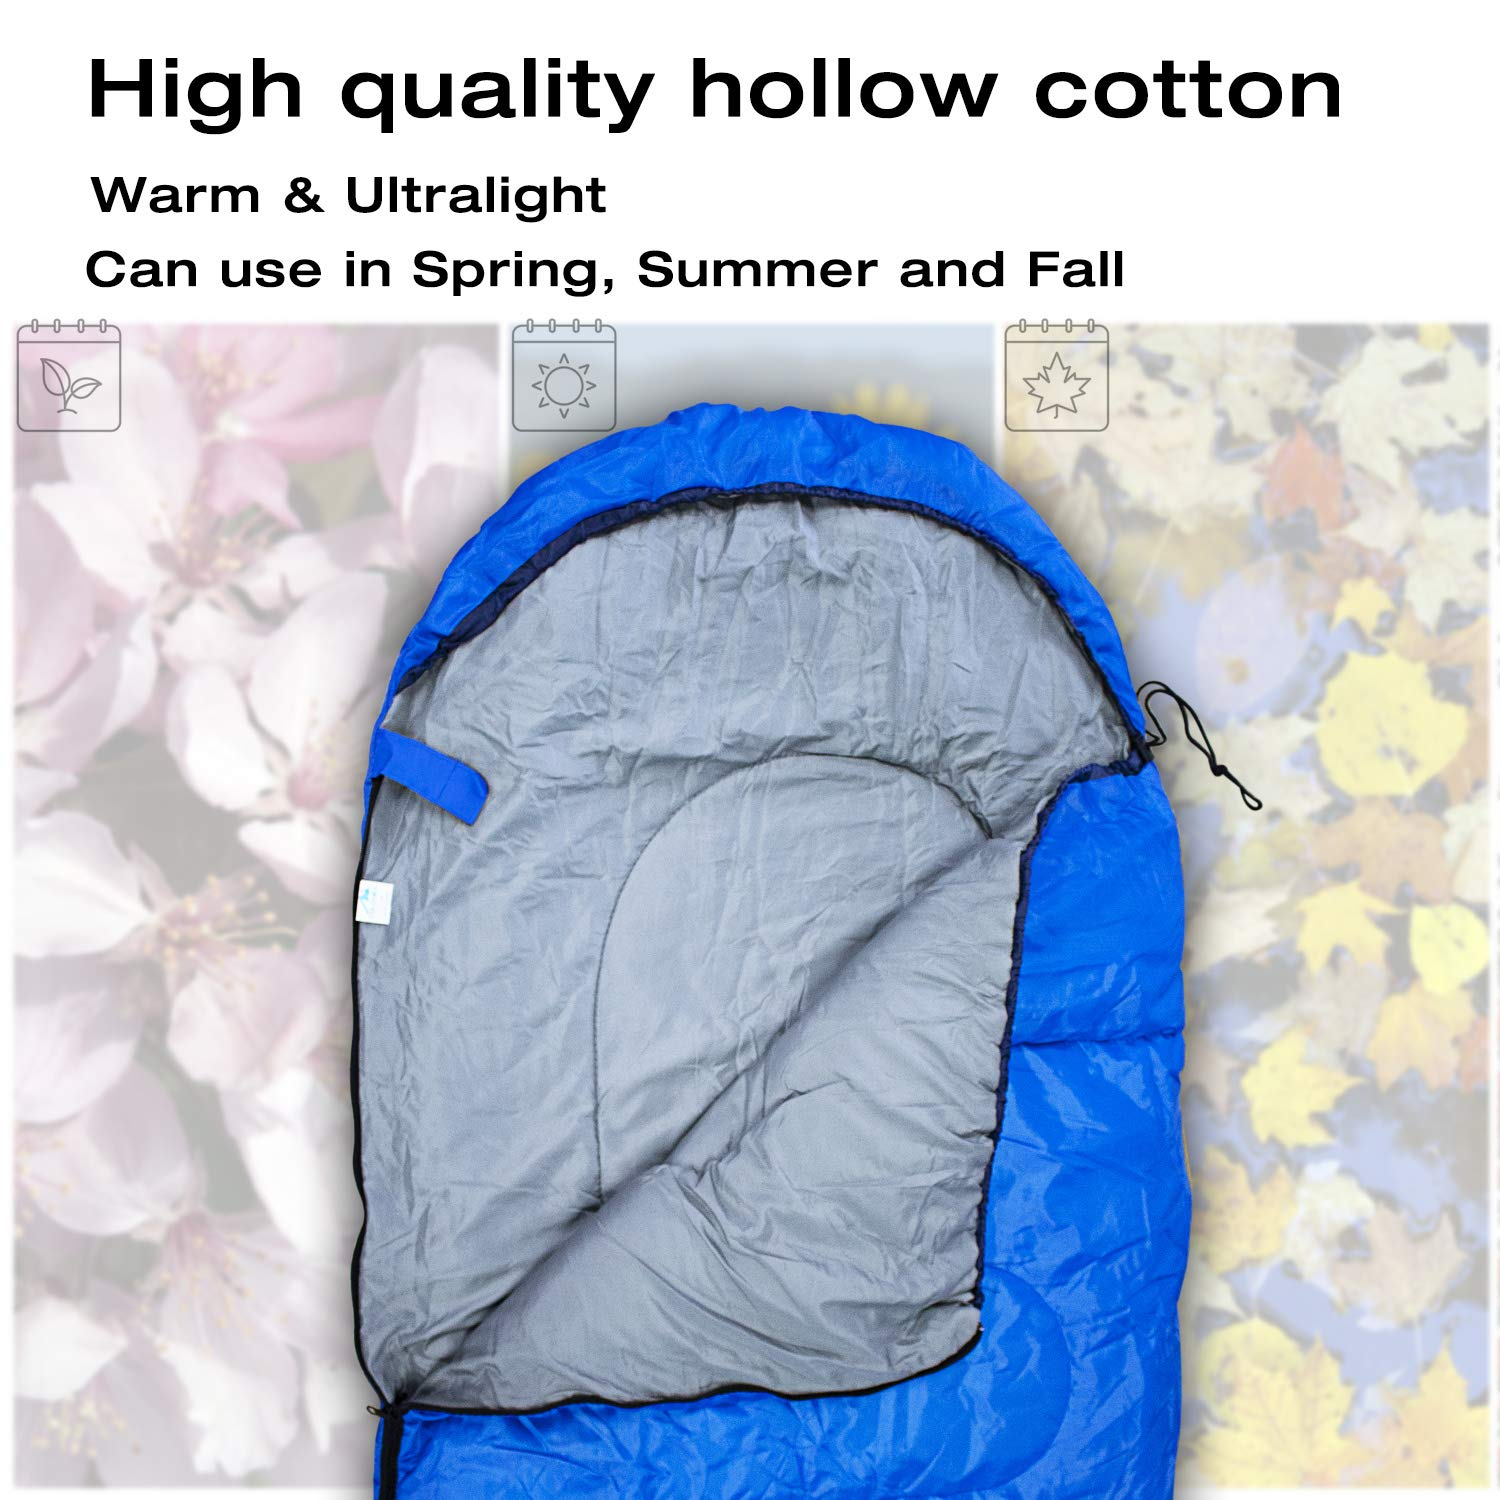 FLYSBA Sleeping Bag, Waterproof Bags Perfect for Backpacking, Camping, Or Hiking, Lightweight and Compact, Great for 3 Season Warm Cool Weather, Indoor Outdoor Use